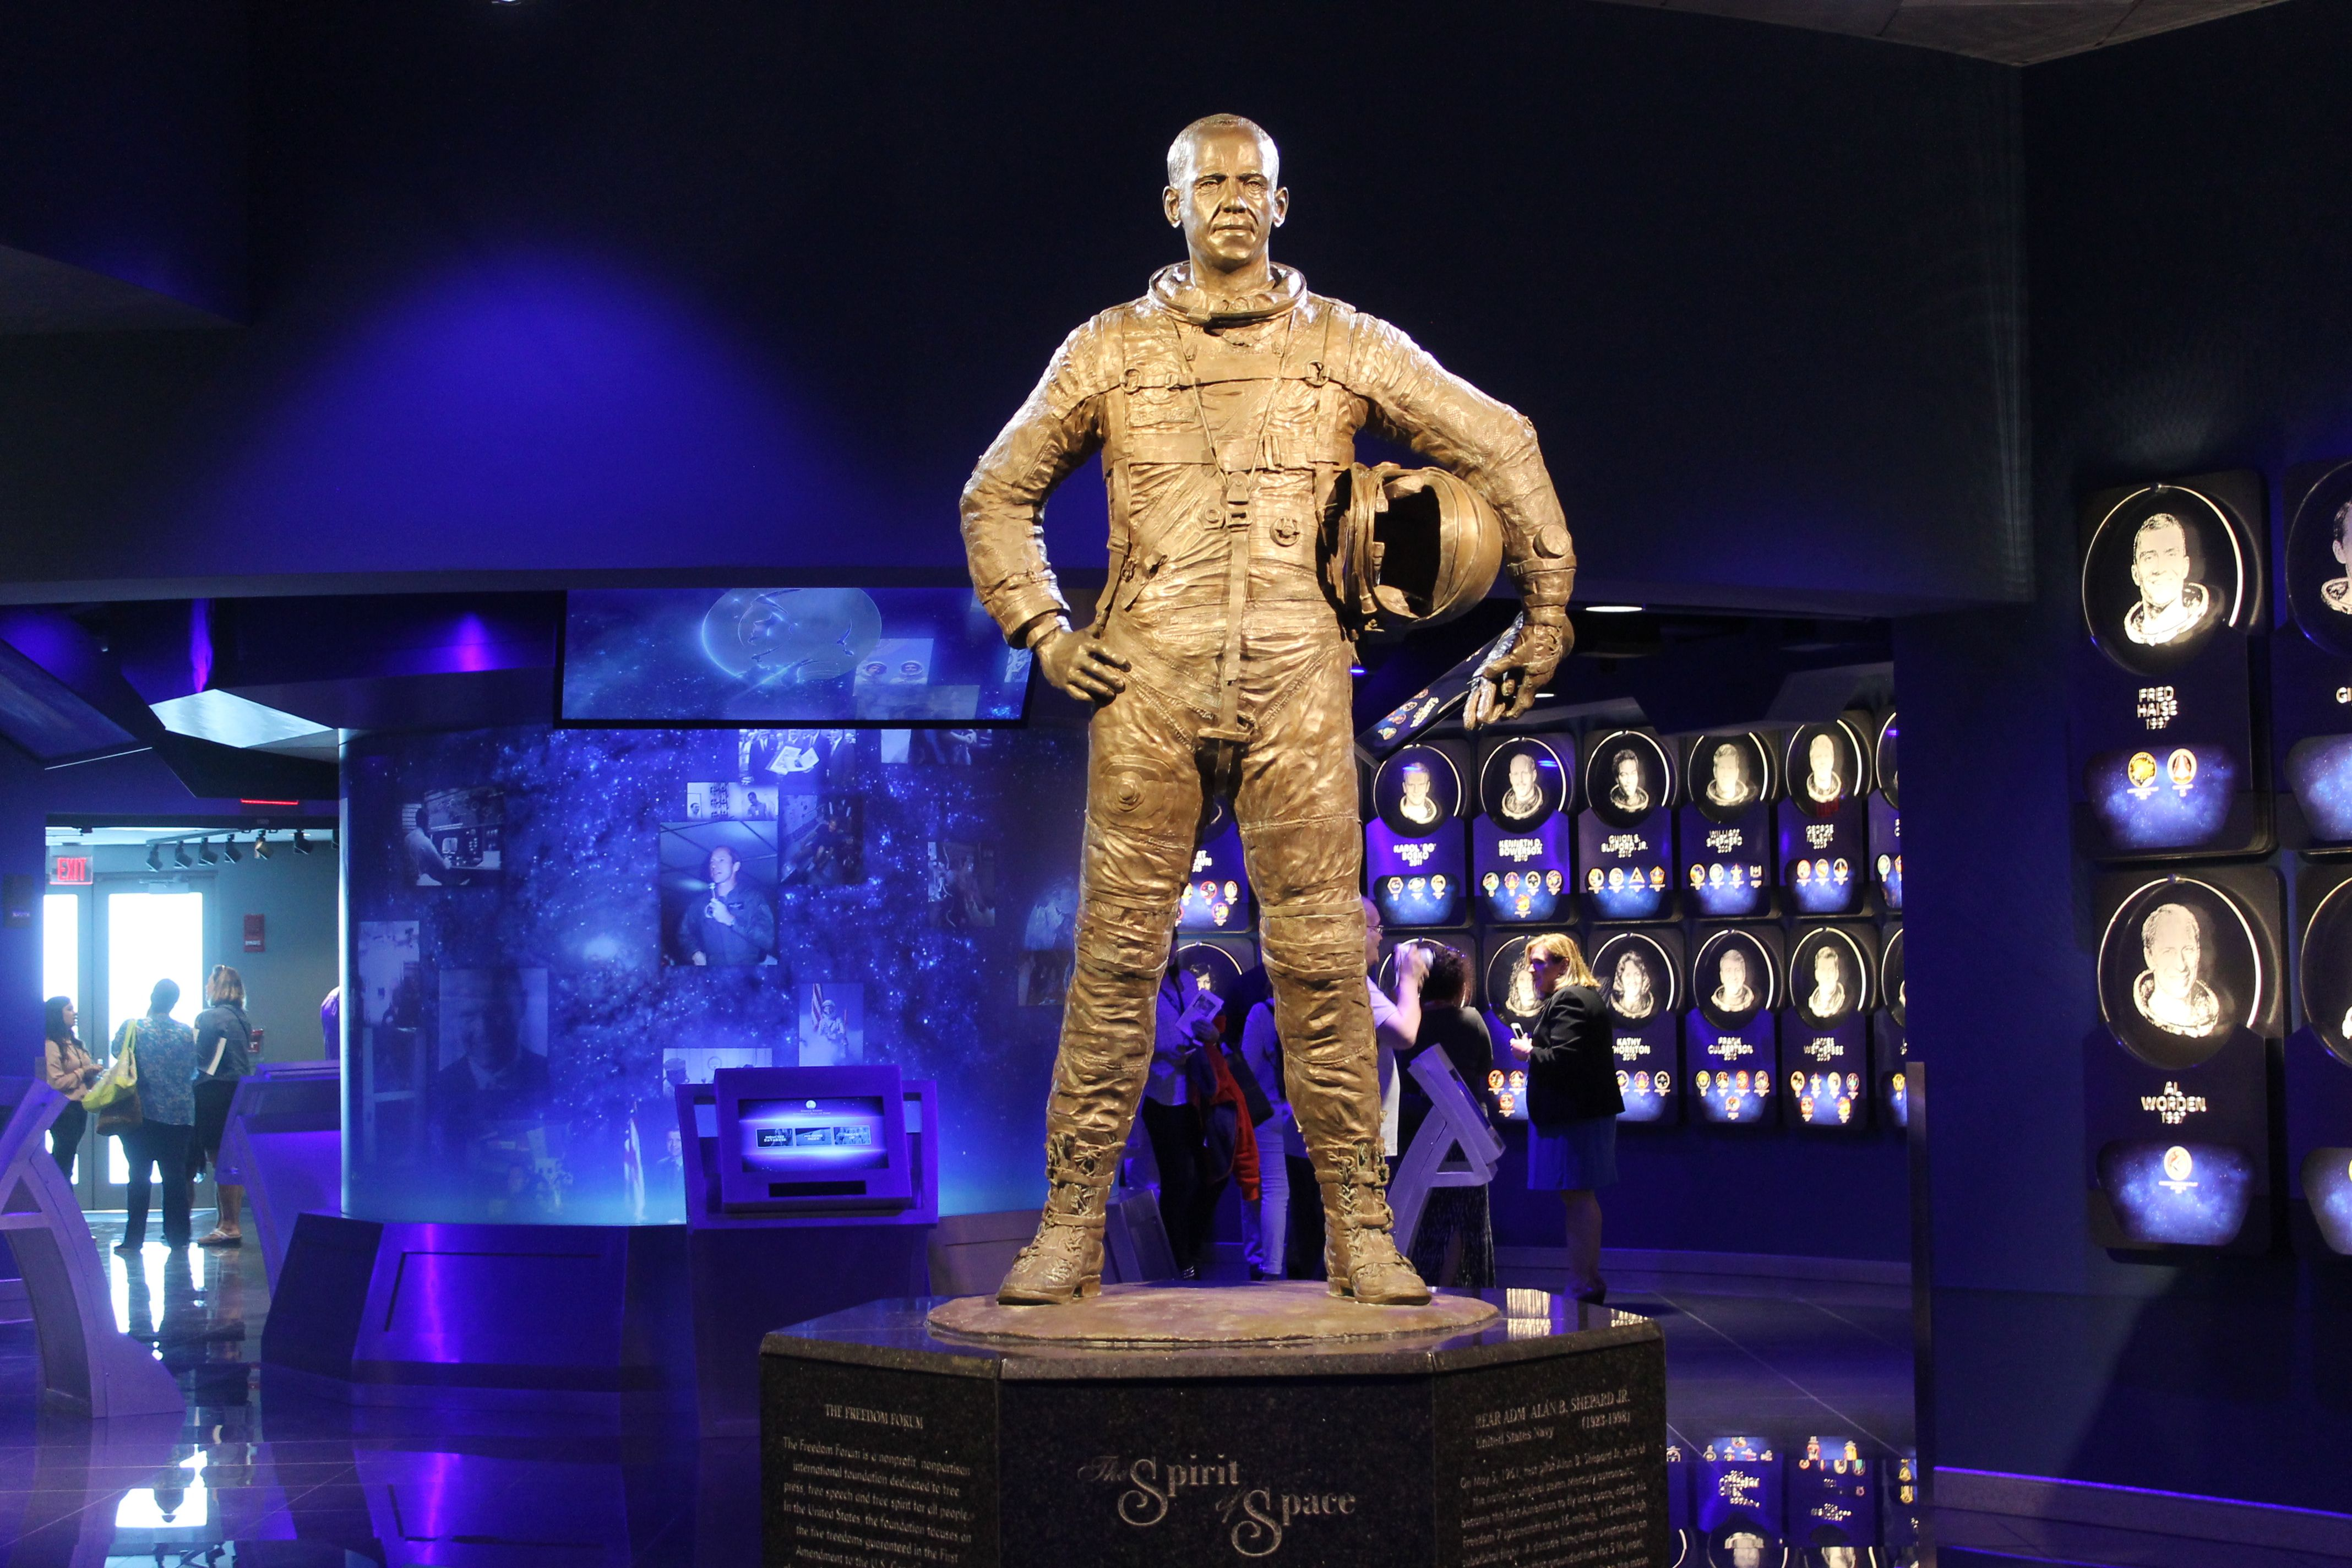 NASA heroes and legends